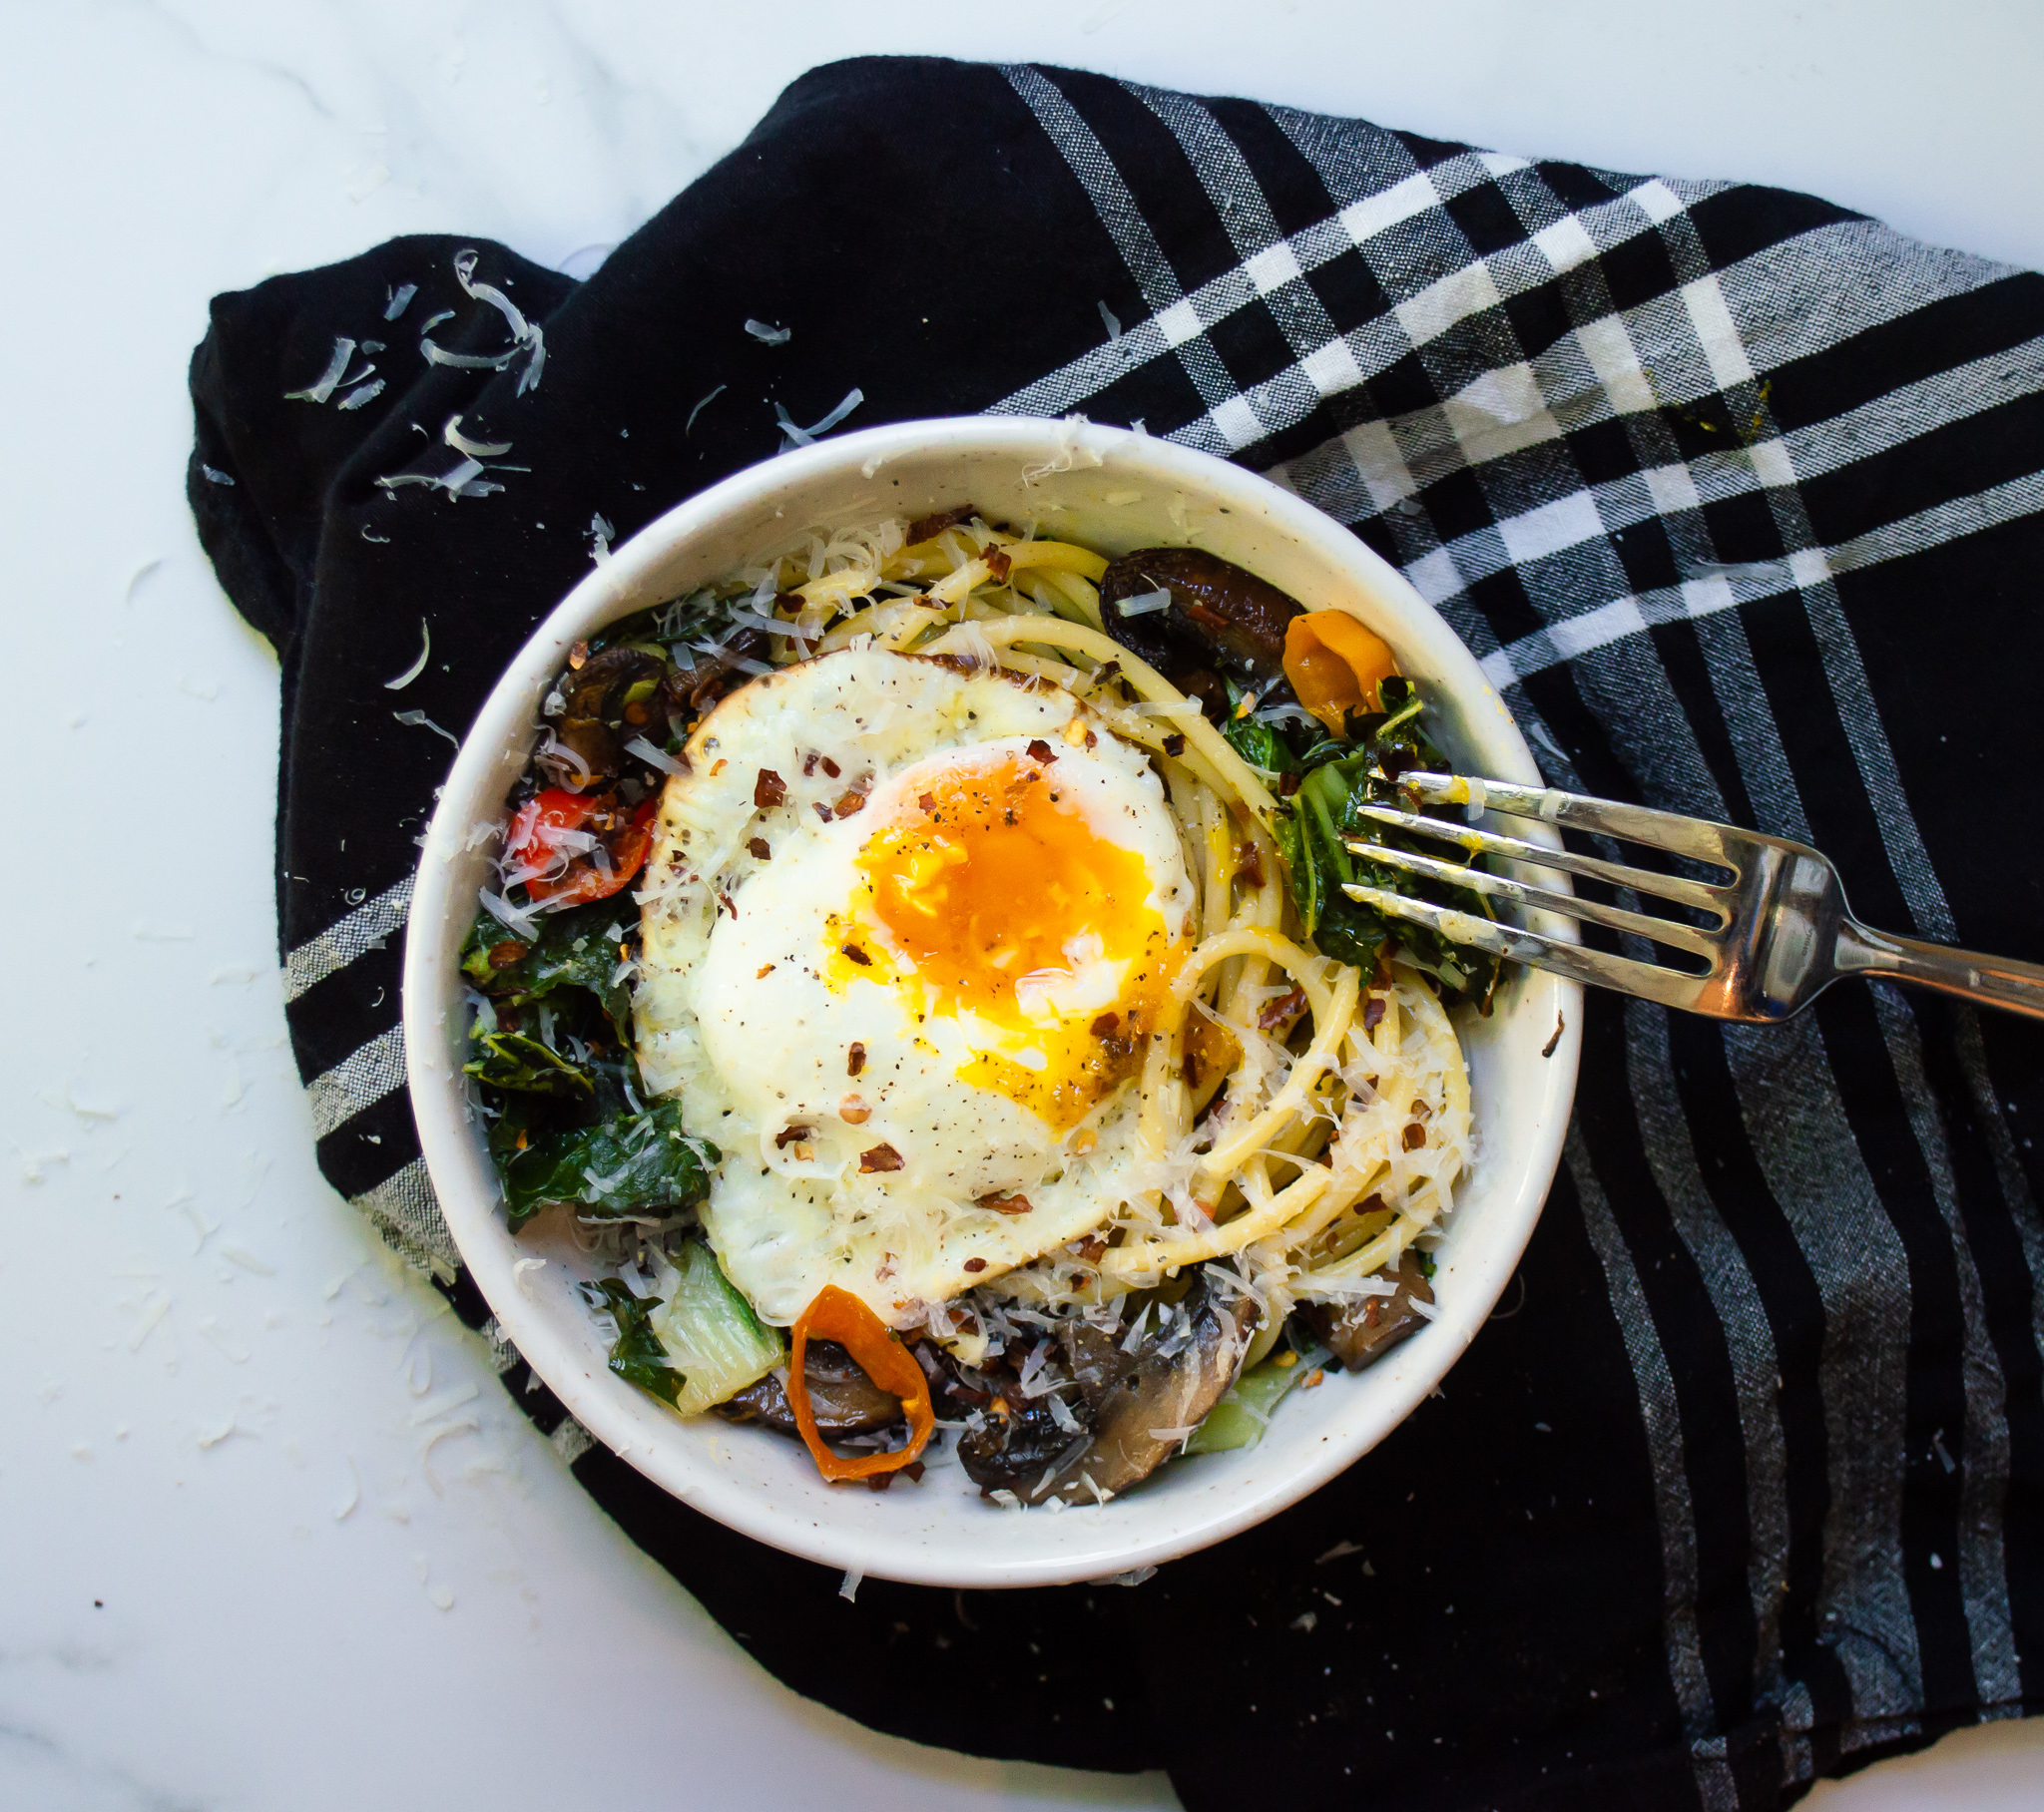 My firm belief: pasta is always better if you #putaneggonit. Add some leftover roasted veggies, like mushrooms, peppers, and bok choy, and you've got my favorite breakfast.